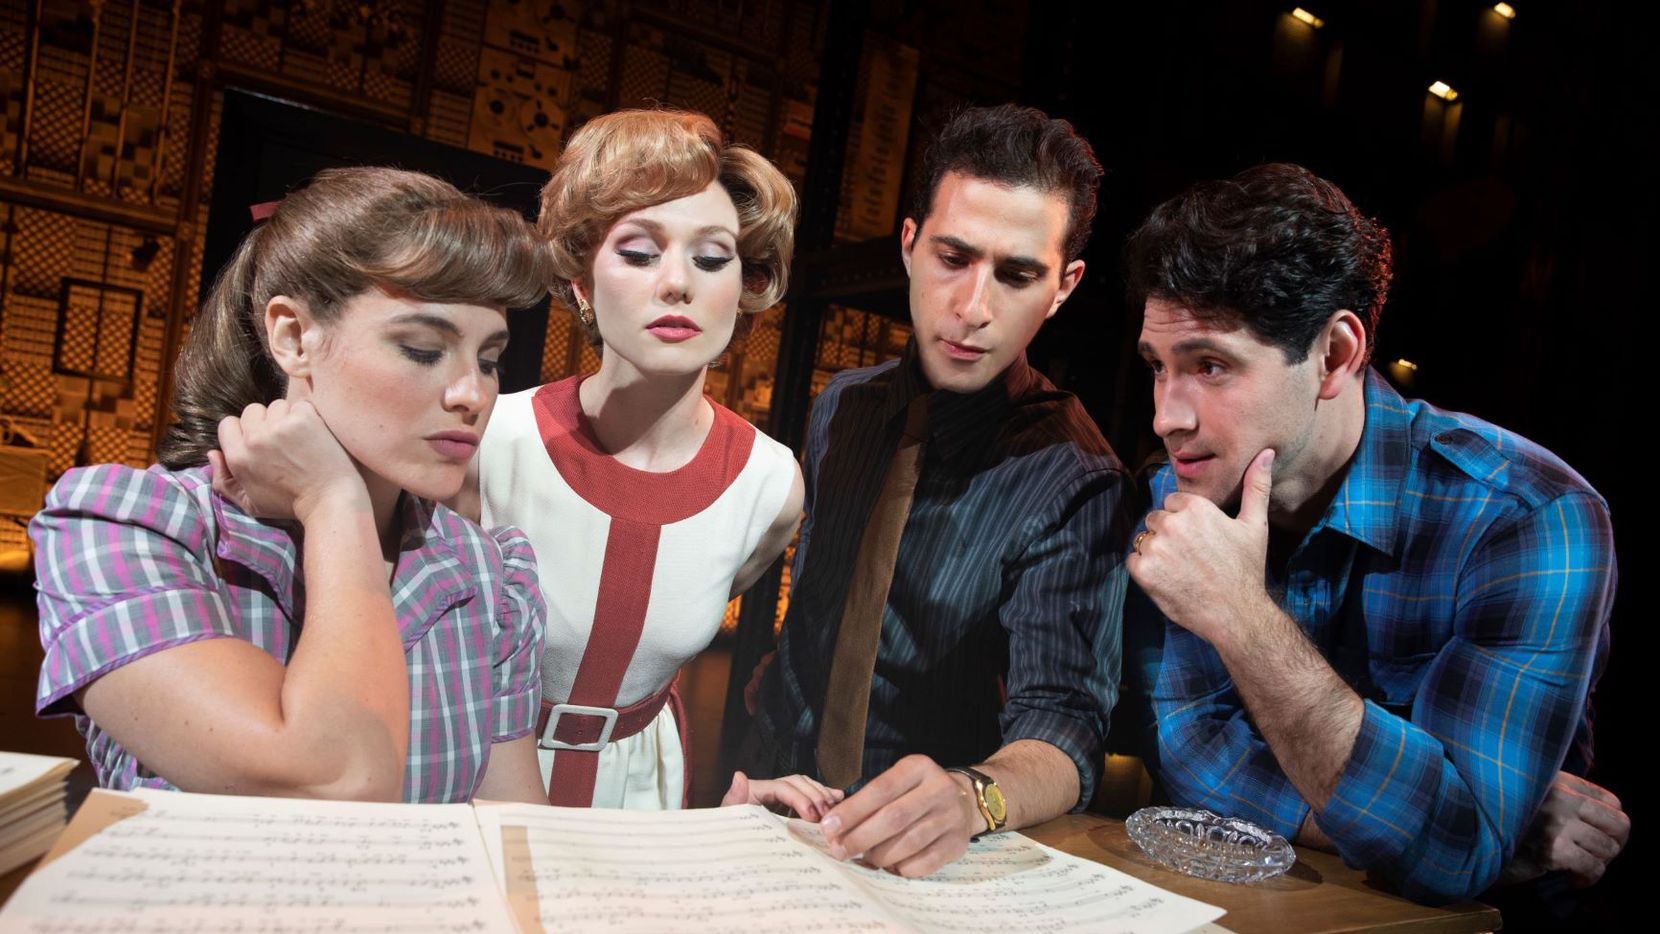 """From left, Sarah Bockel (Carole King), Alison Whitehurst (Cynthia Weil), Jacob Heimer (Barry Mann) and Dylan S. Wallach (Gerry Goffin) perform in 'Beautiful"""" June 18-23 at the Winspear Opera House in Dallas. Photo by Joan Marcus."""